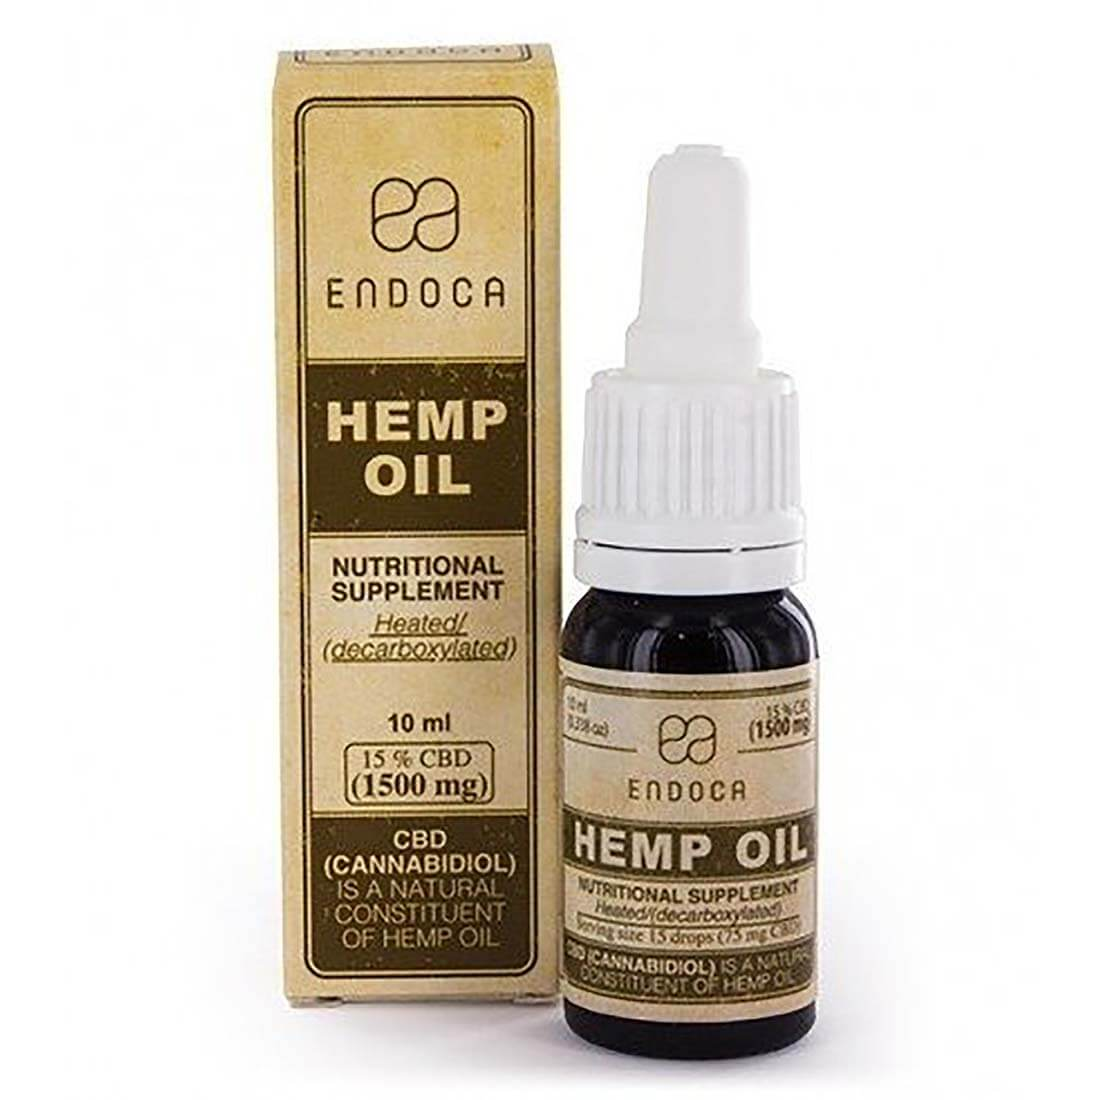 Old Endoca CBD oil